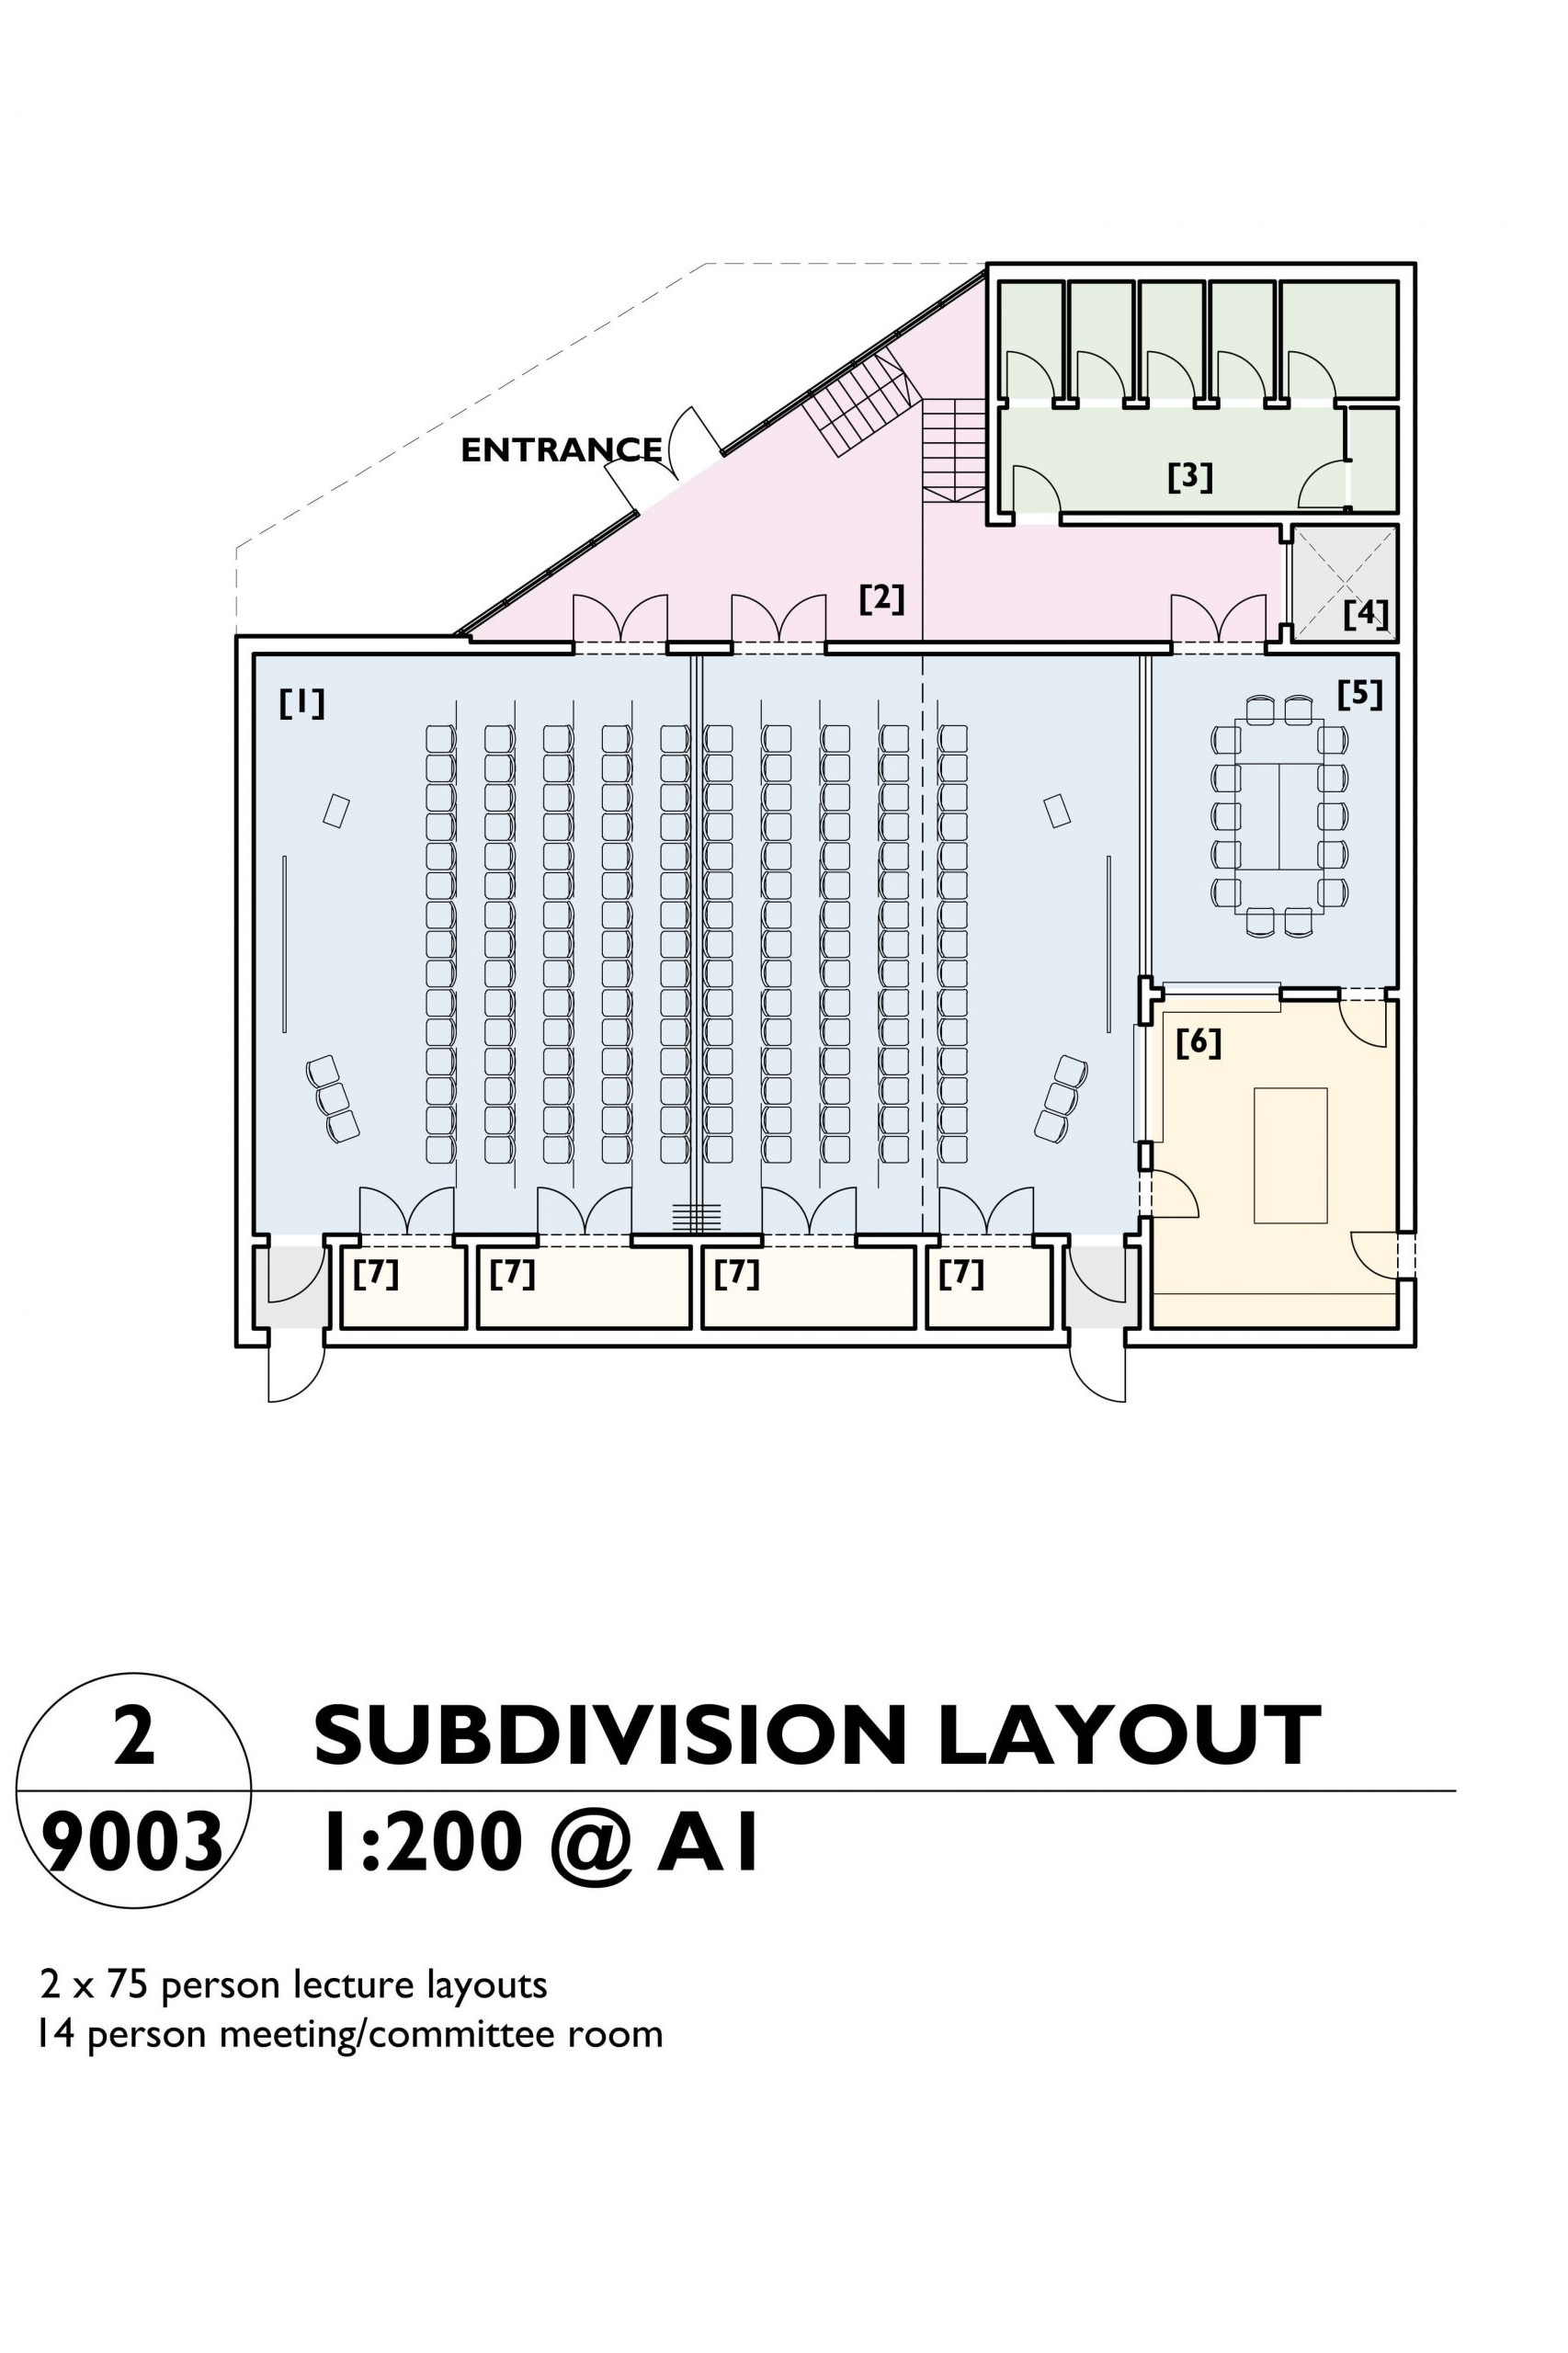 Image showing the sub-division layout plan of the Mill Arts Centre